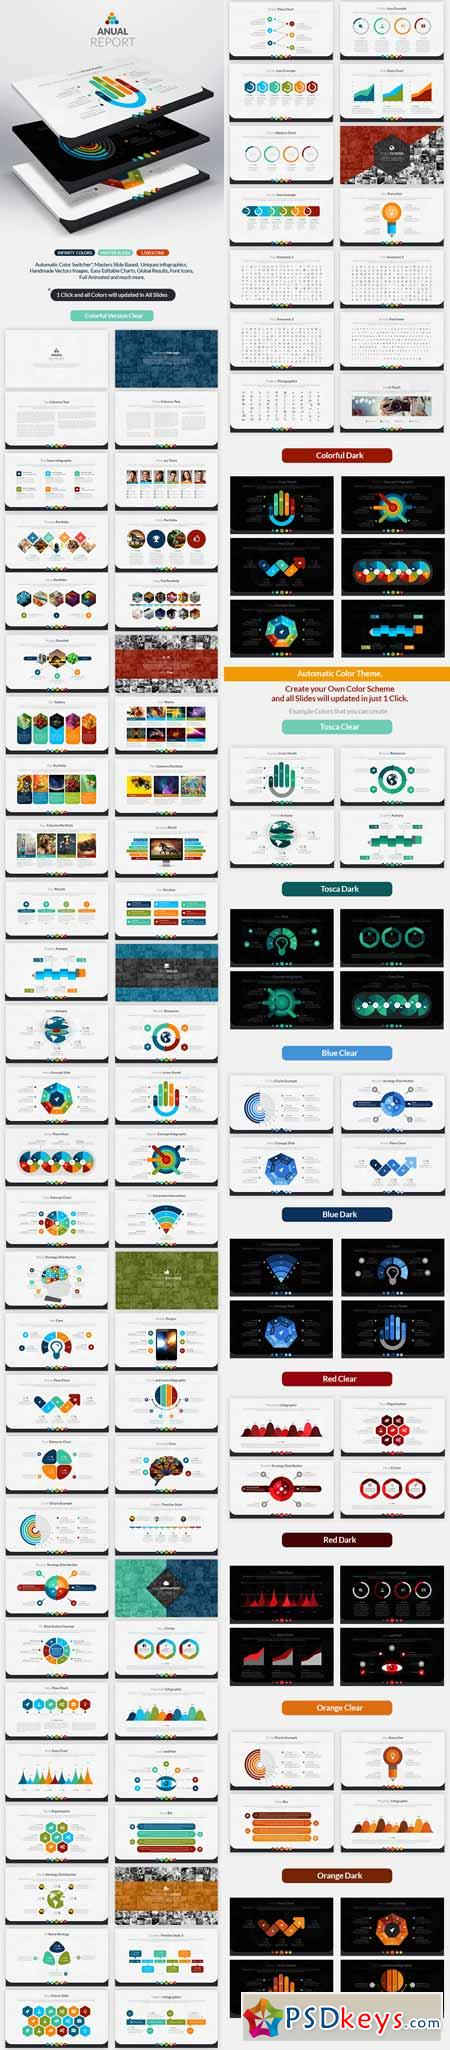 Anual Report Powerpoint Presentation 9780169